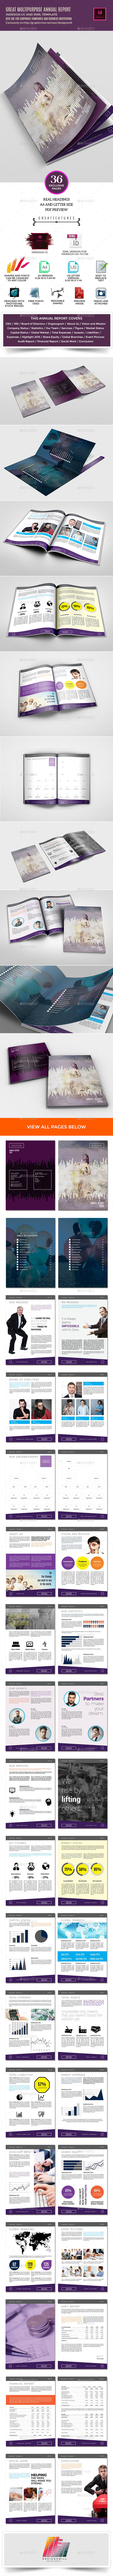 GraphicRiver Backyard Multipurpose Annual Report Template 10248444